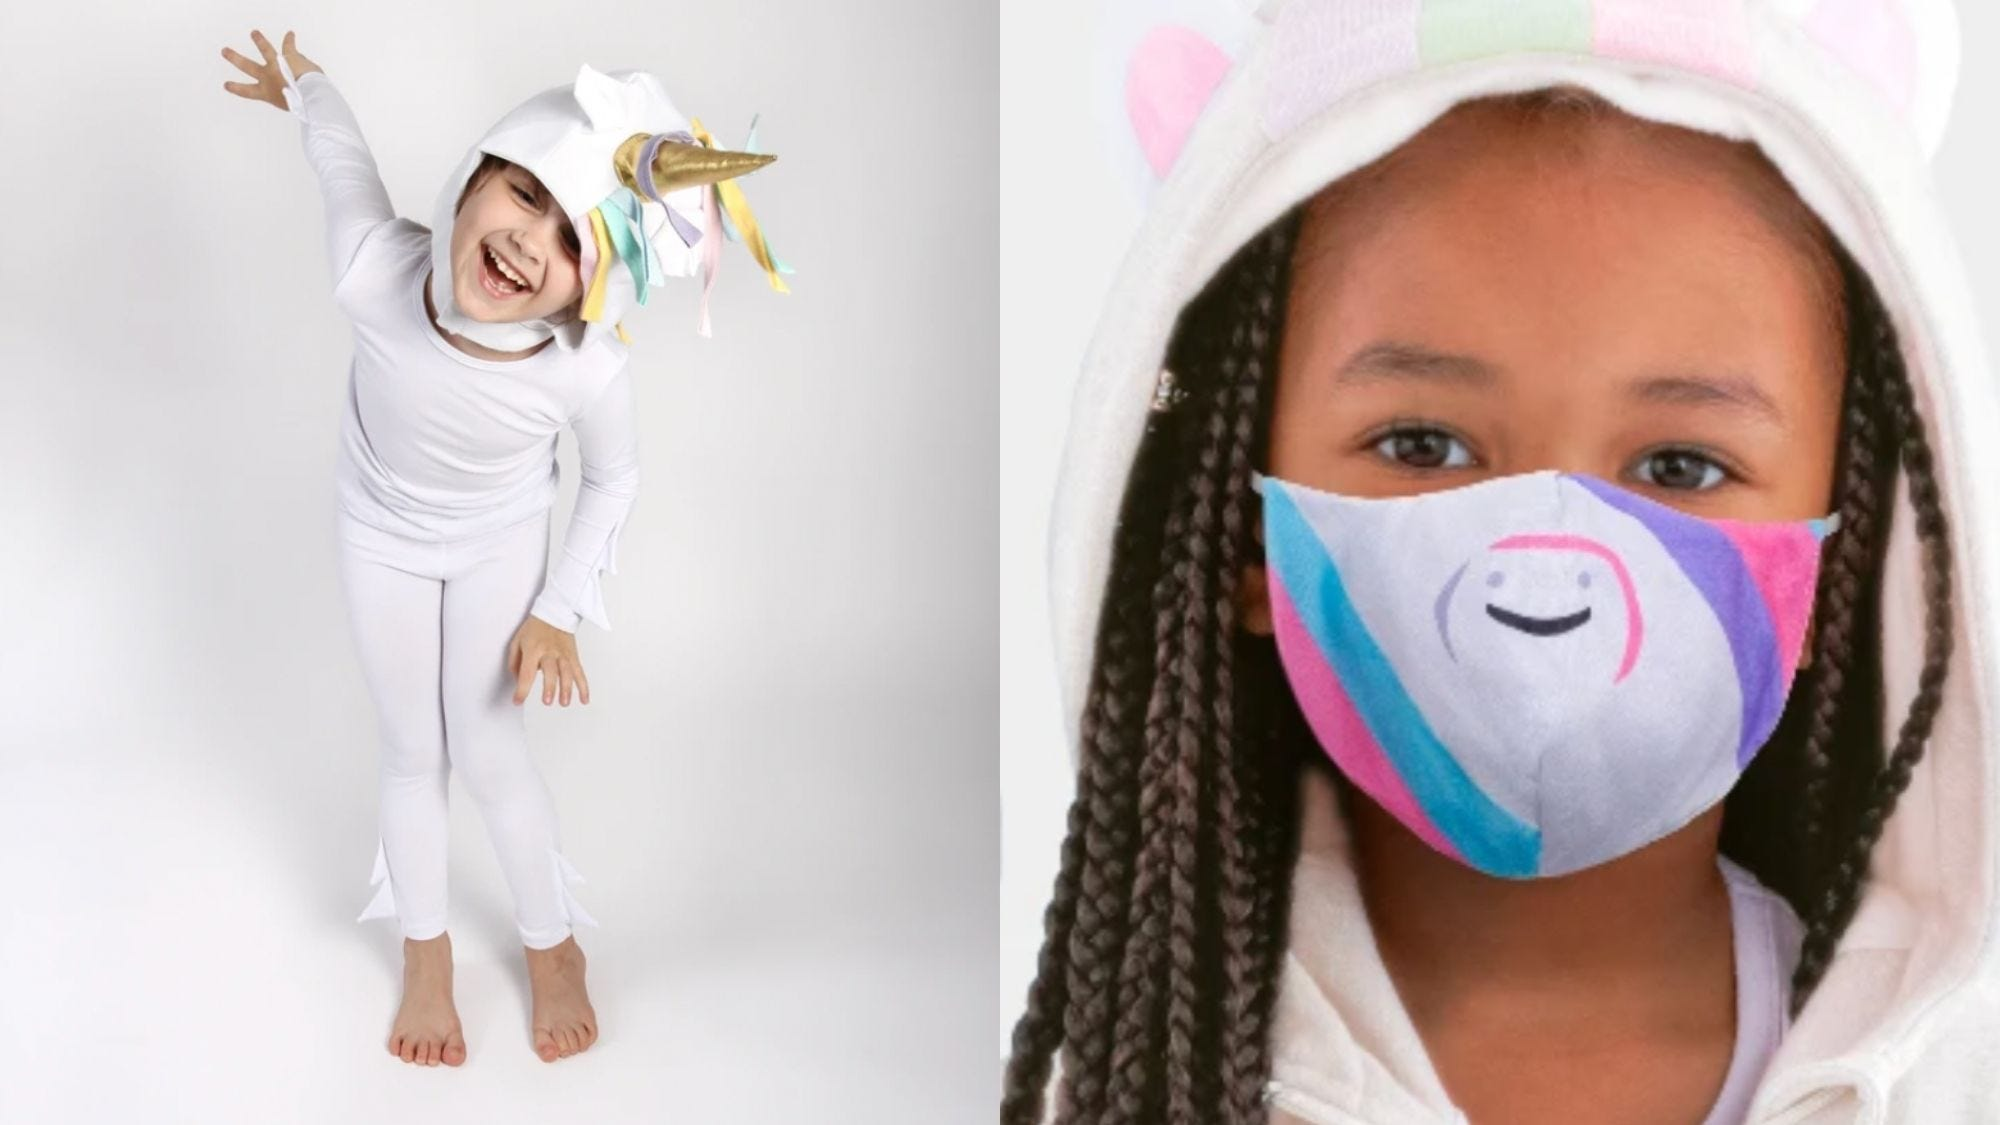 25 creative Halloween costumes kids can wear with masks